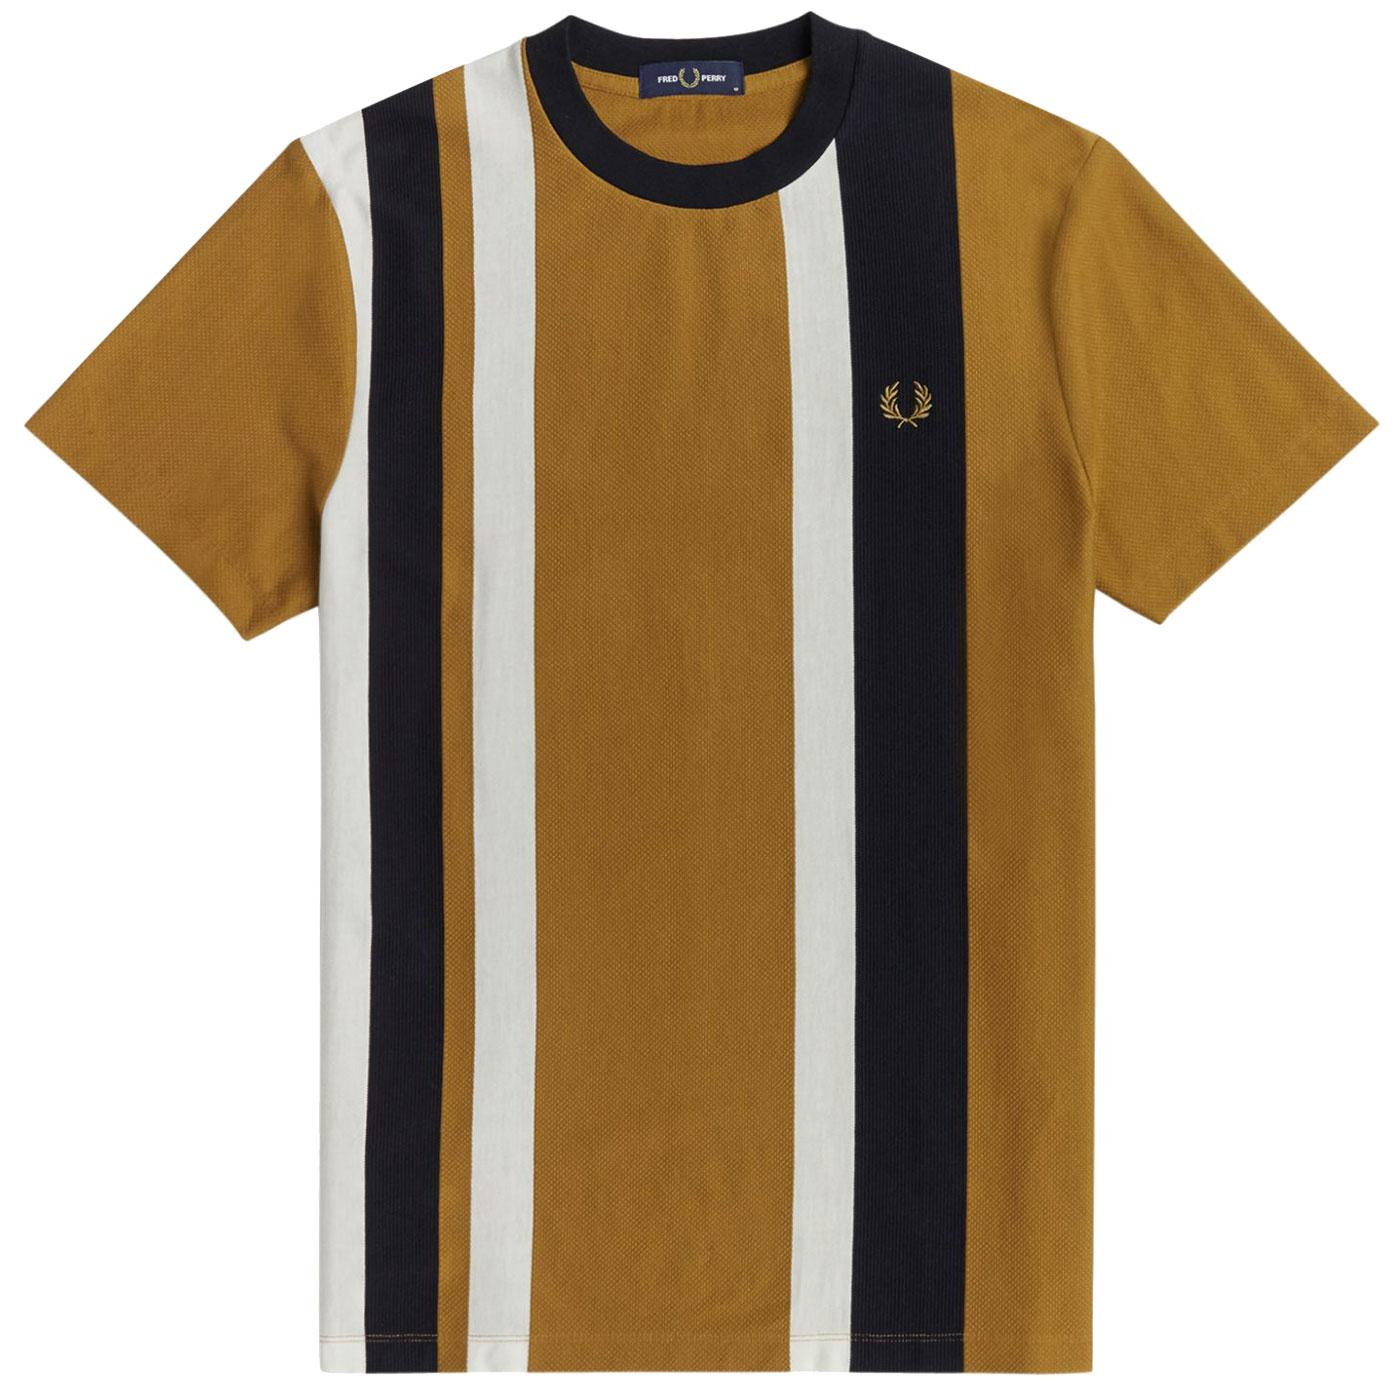 FRED PERRY Mens Retro Multi Textured Stripe Tee DC